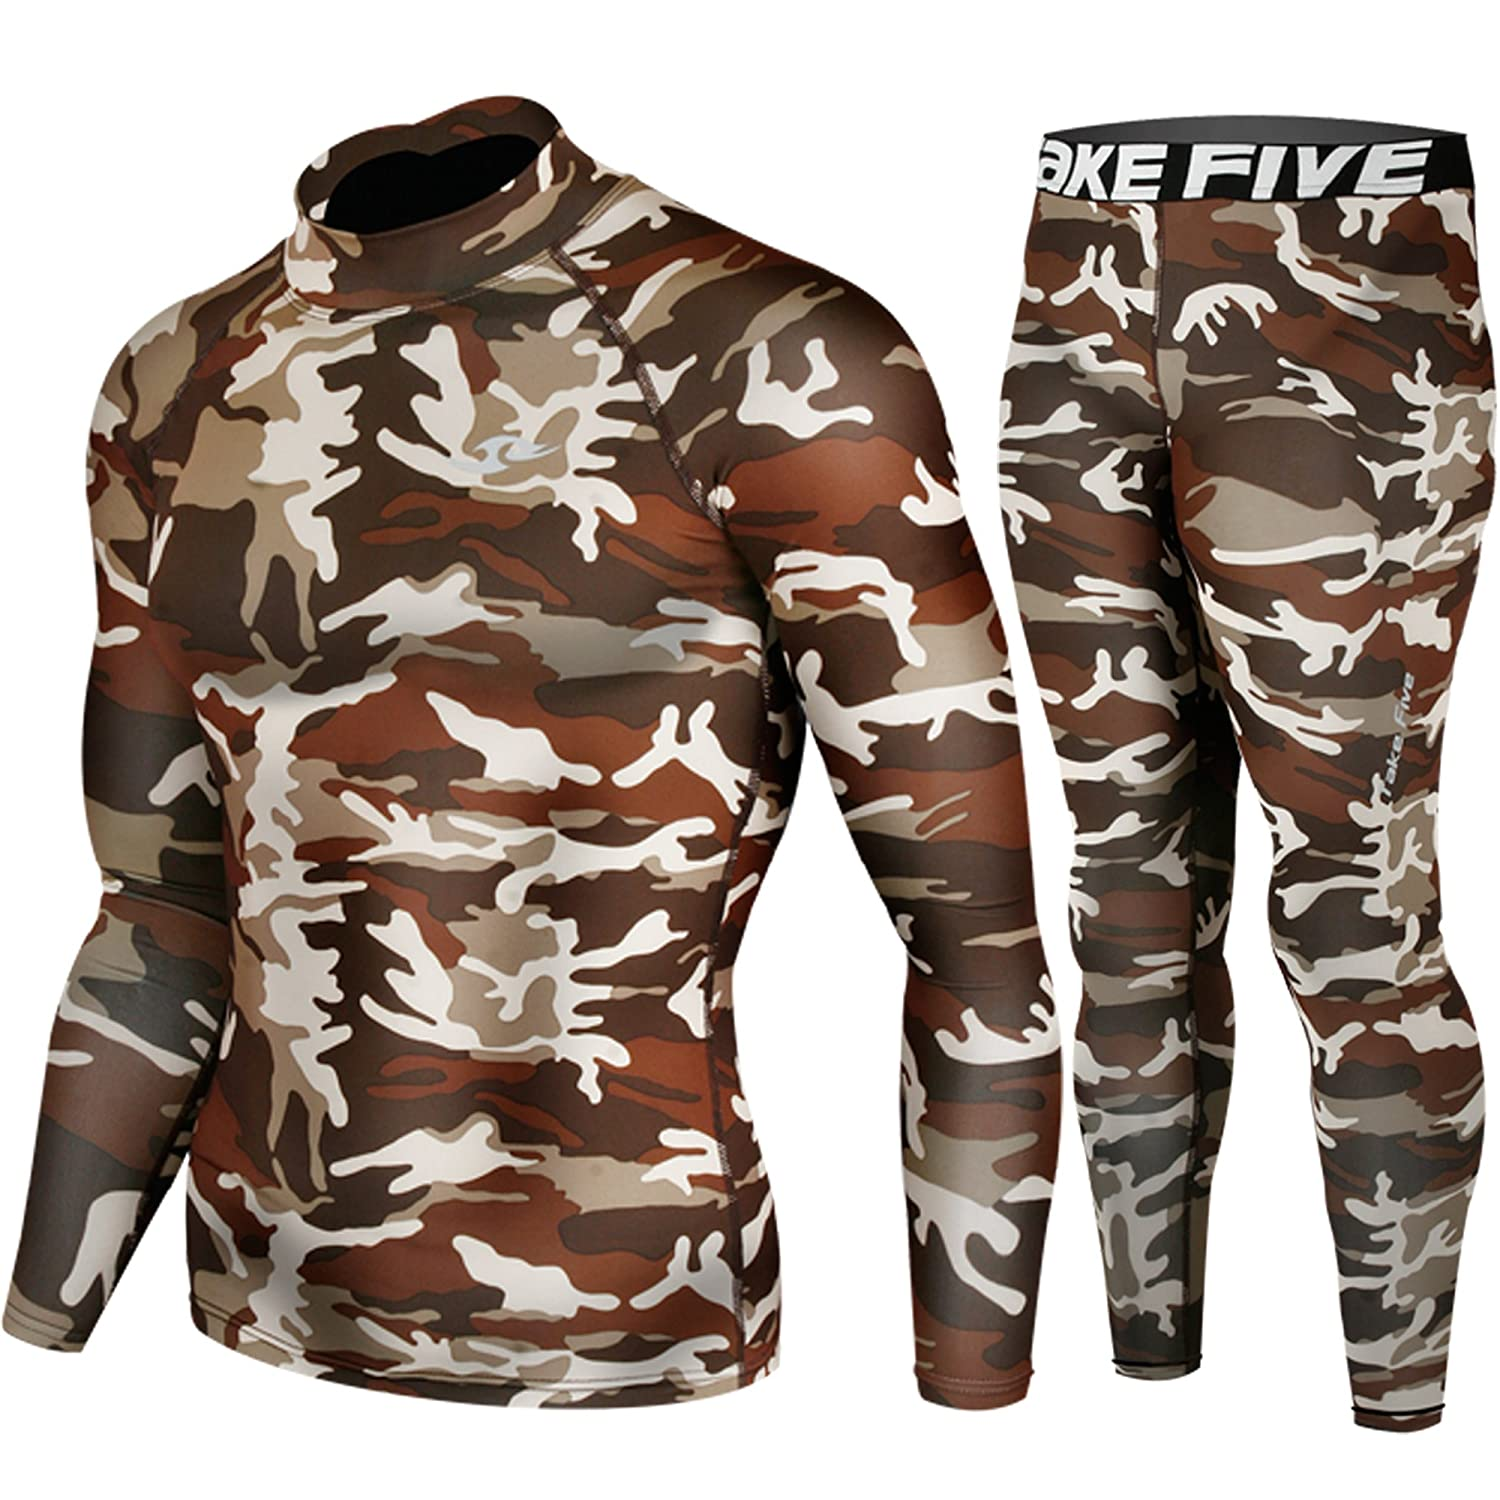 Skin Tight Compression Base Layer Long Sleeve Under Shirt & Pants Camo Pattern SET JustOneStyle